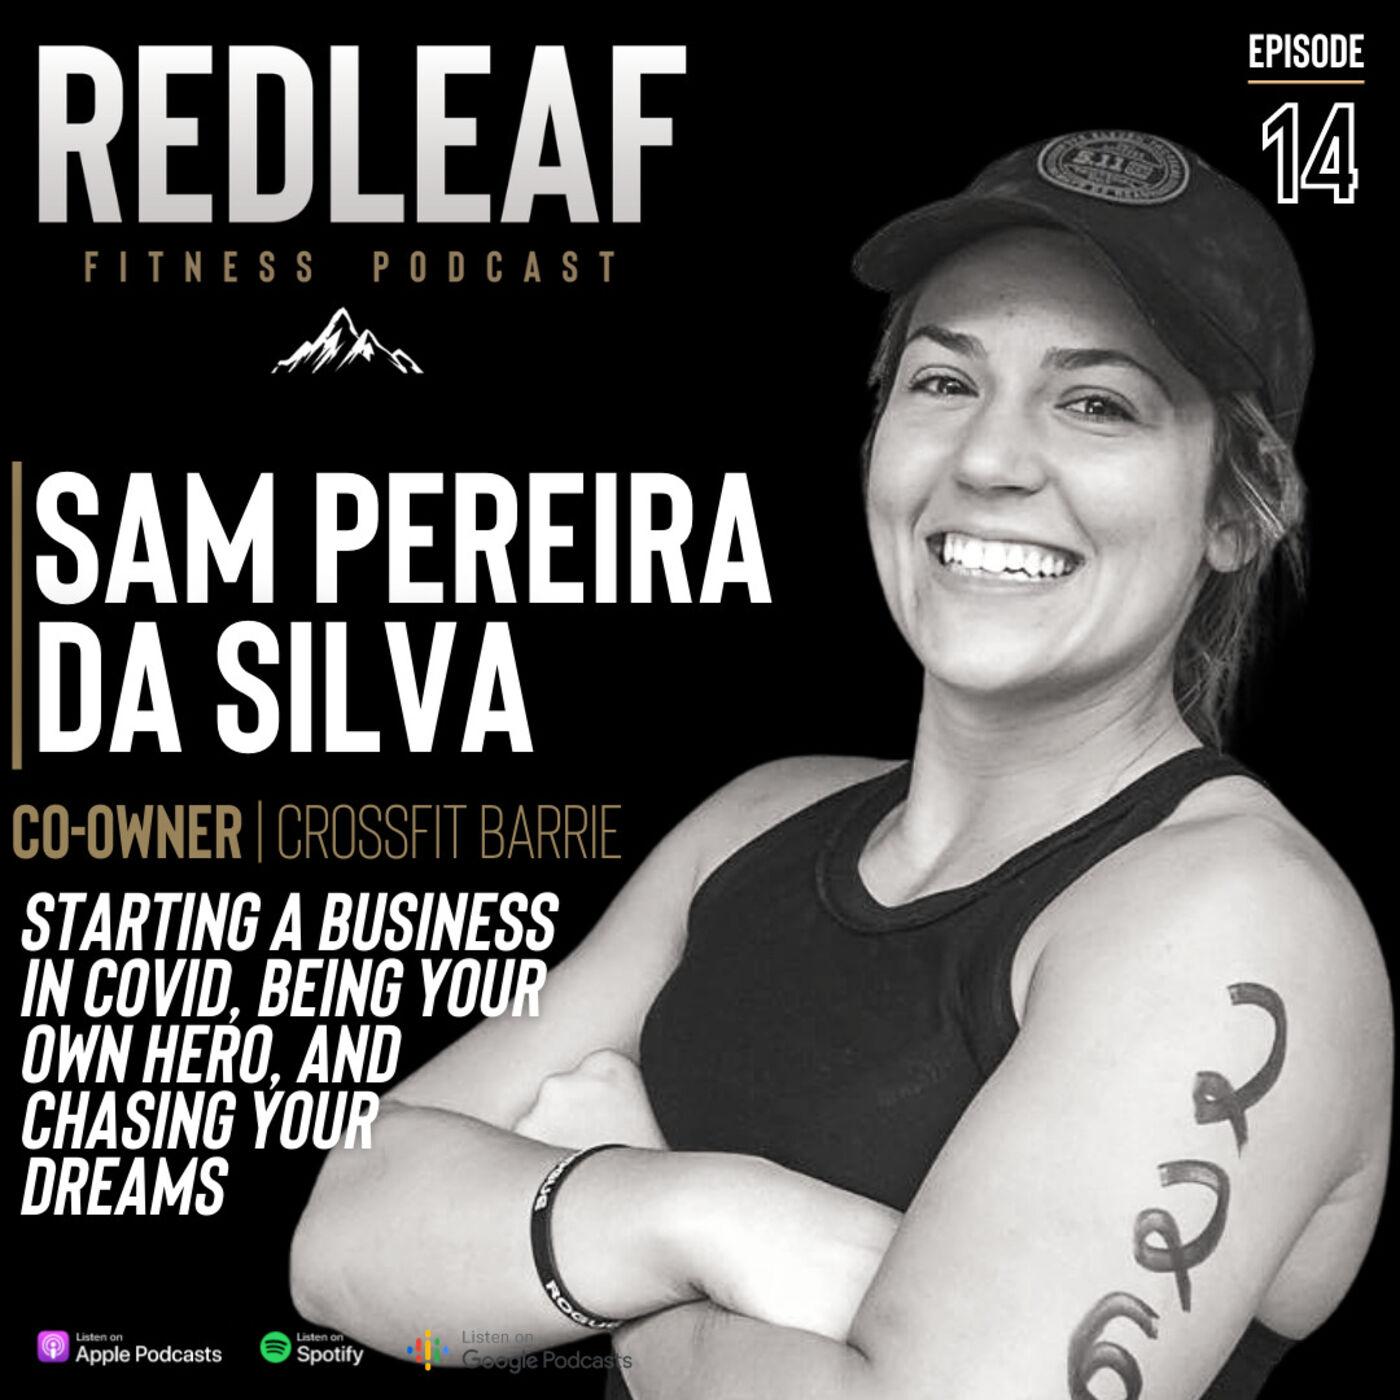 Ep.14 | Sam Pereira da Silva Co-Owner of CrossFit Barrie on being your own hero & chasing your dreams